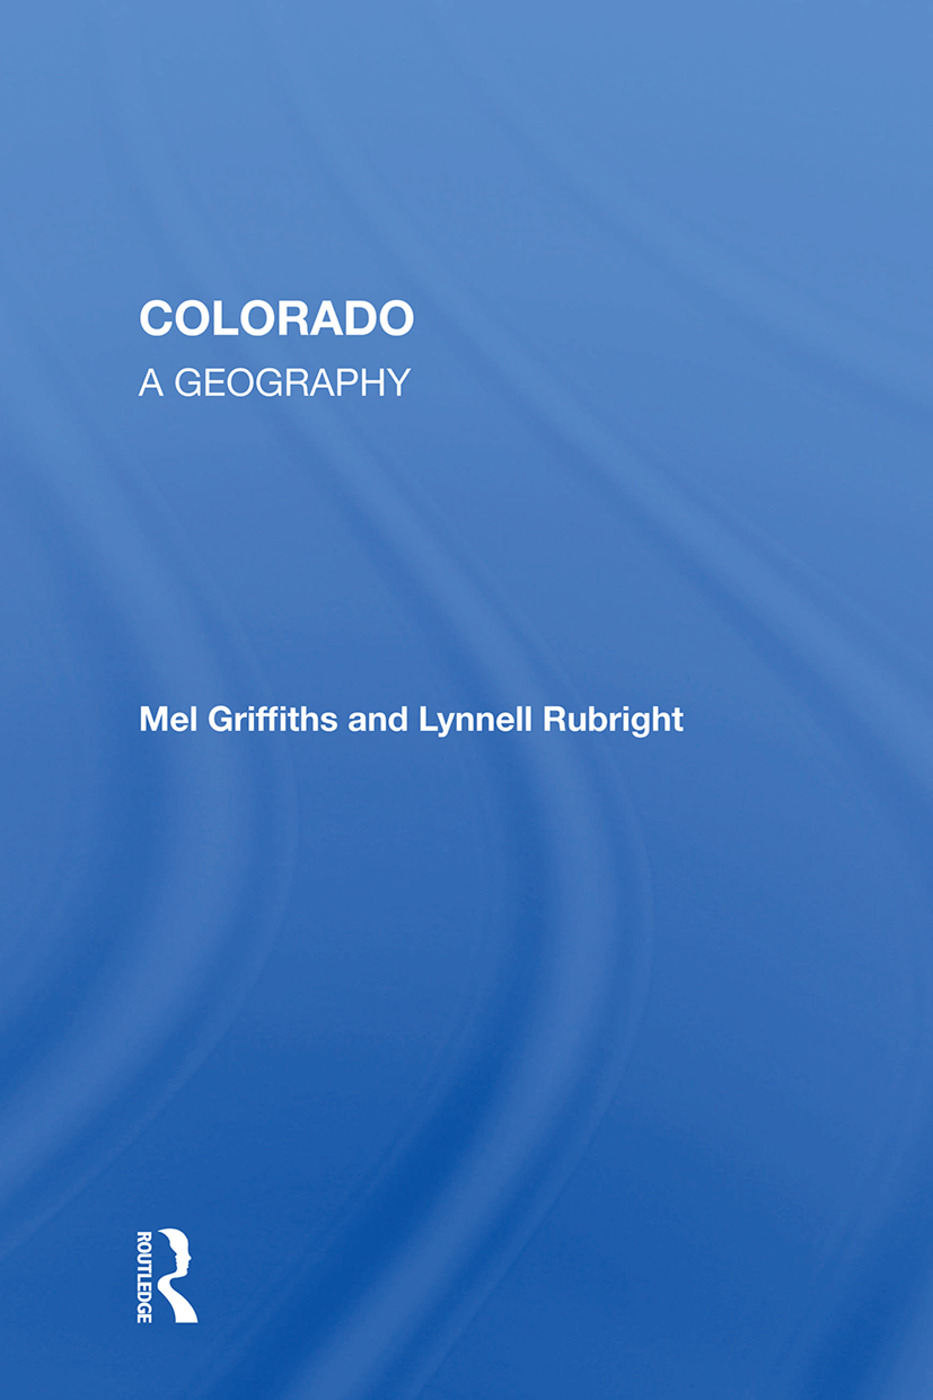 Colorado: A Geography book cover